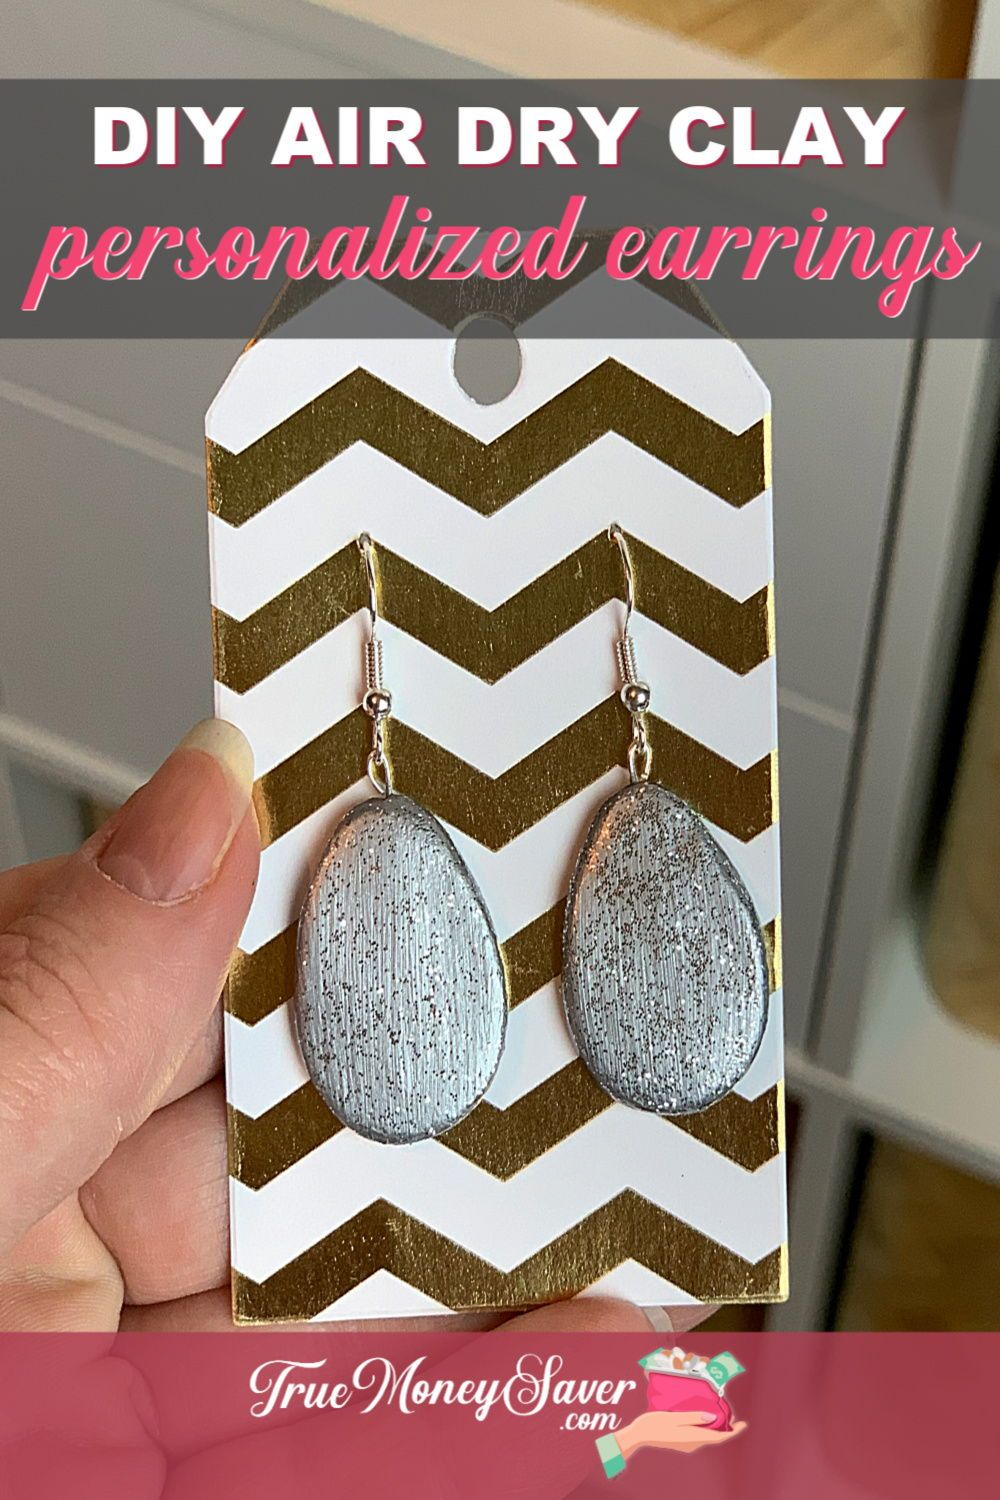 How To Make Earrings Easily From Air Dry Clay How To Make Earrings Diy Air Dry Clay Air Dry Clay